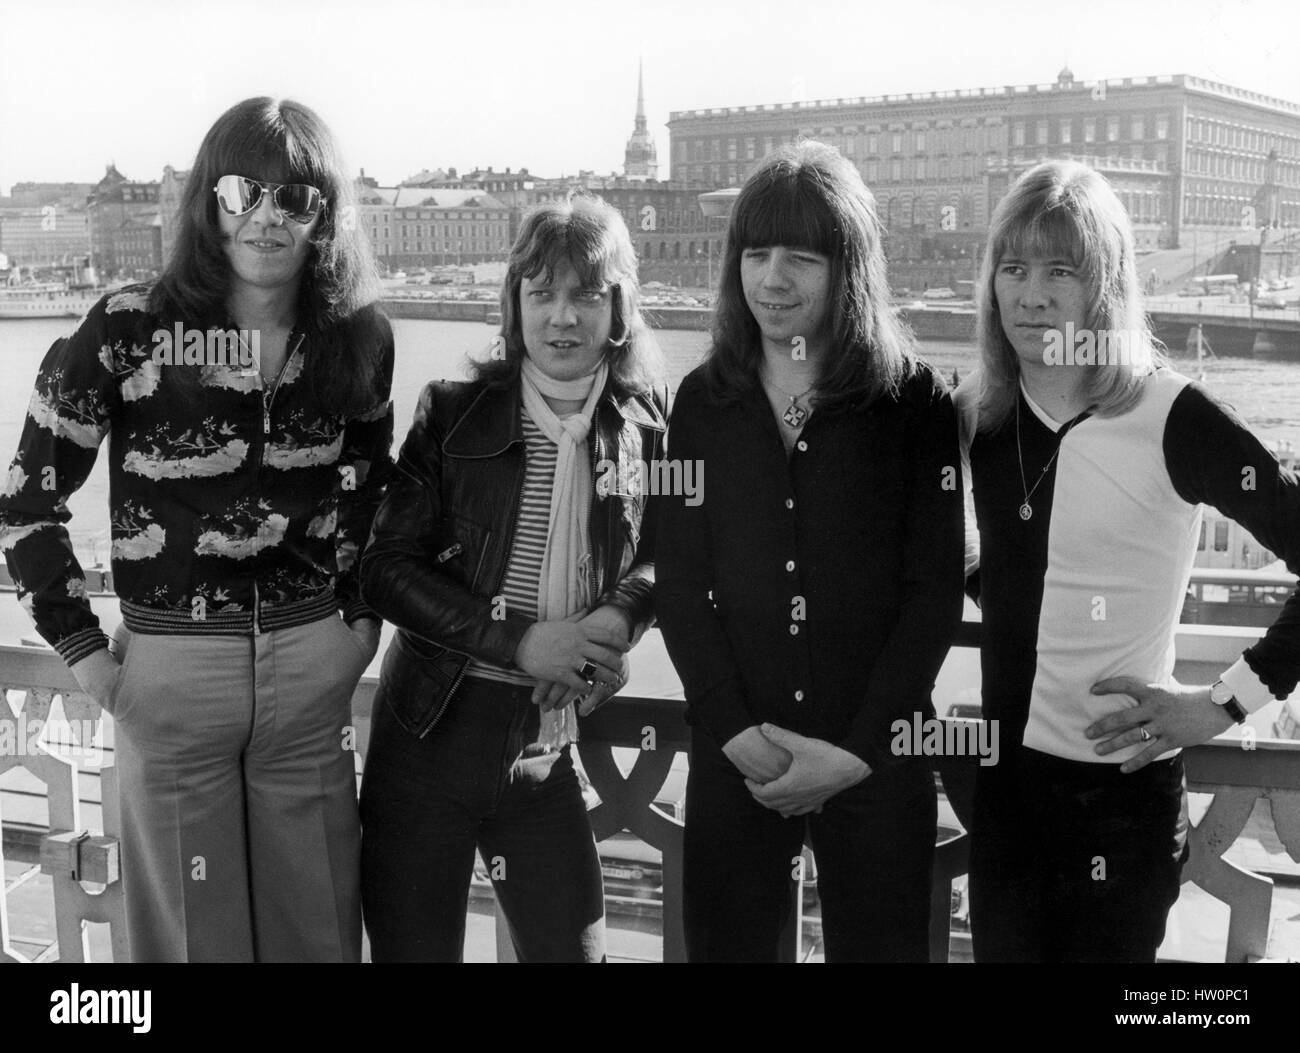 the sweet british pop group 1975 with the stockholm royal palace in stock photo royalty free. Black Bedroom Furniture Sets. Home Design Ideas